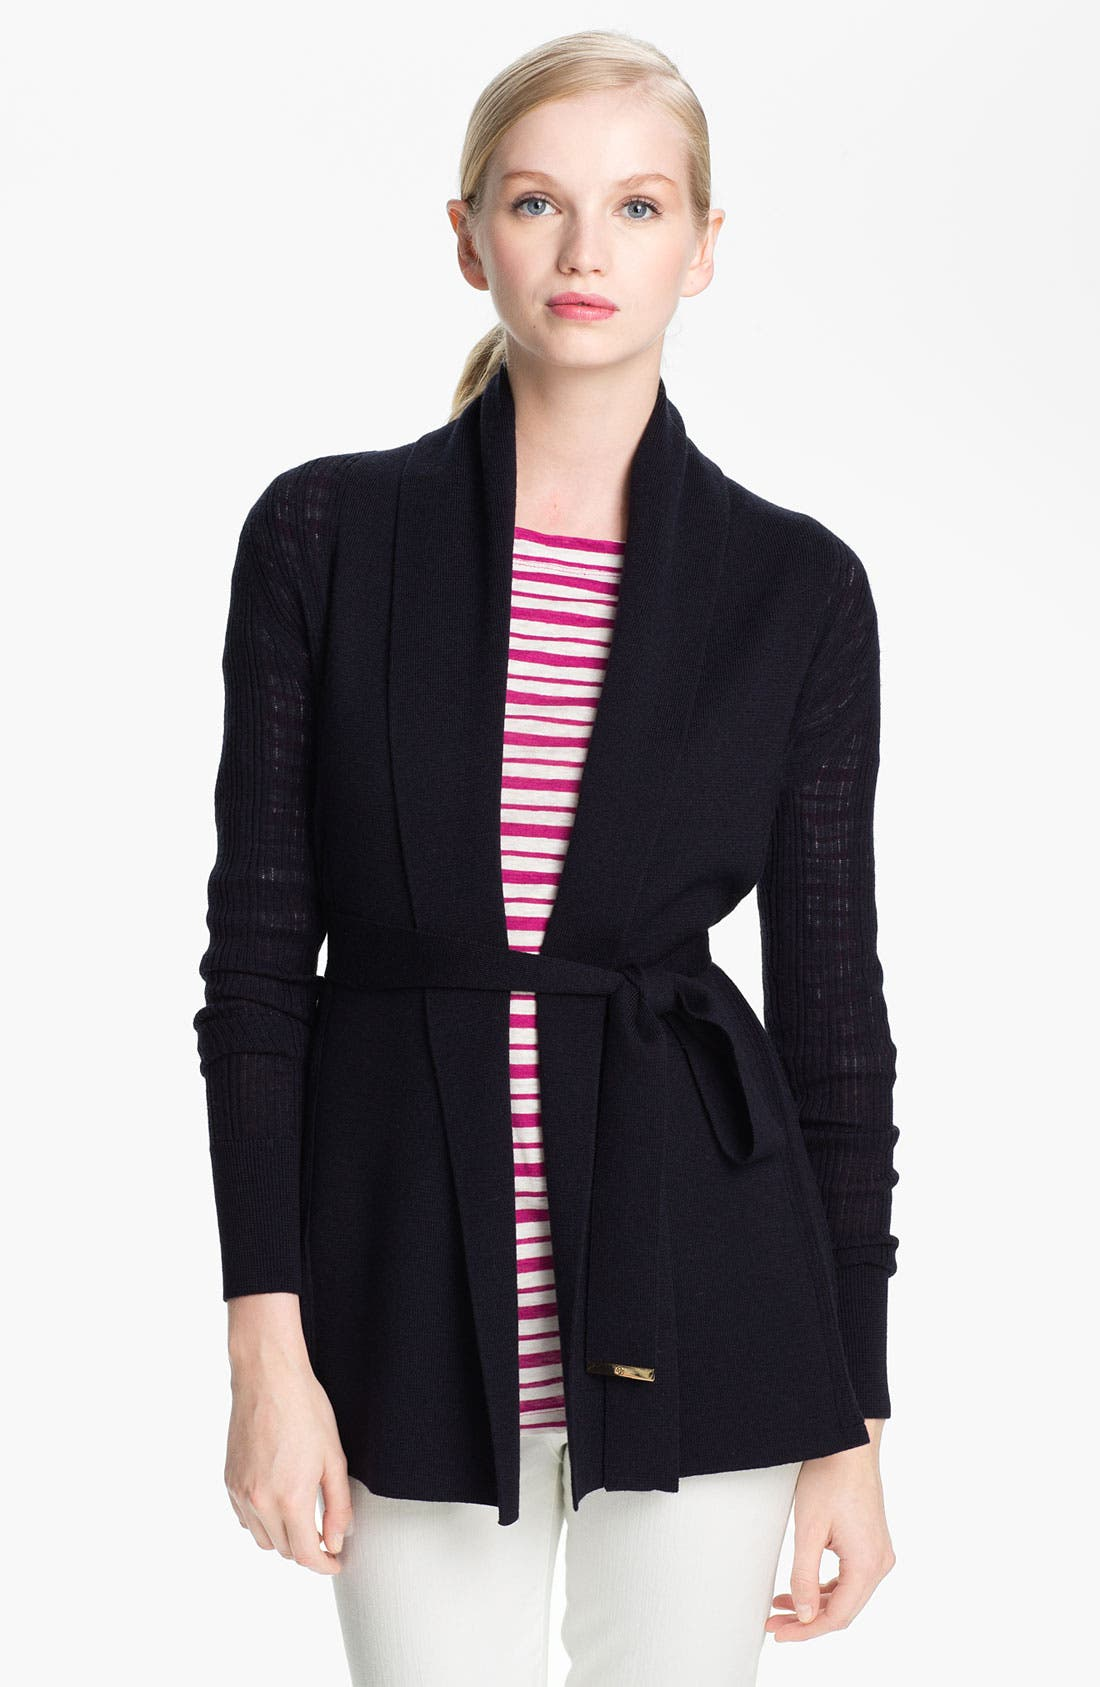 Alternate Image 1 Selected - Tory Burch 'Natalie' Merino Wool Cardigan